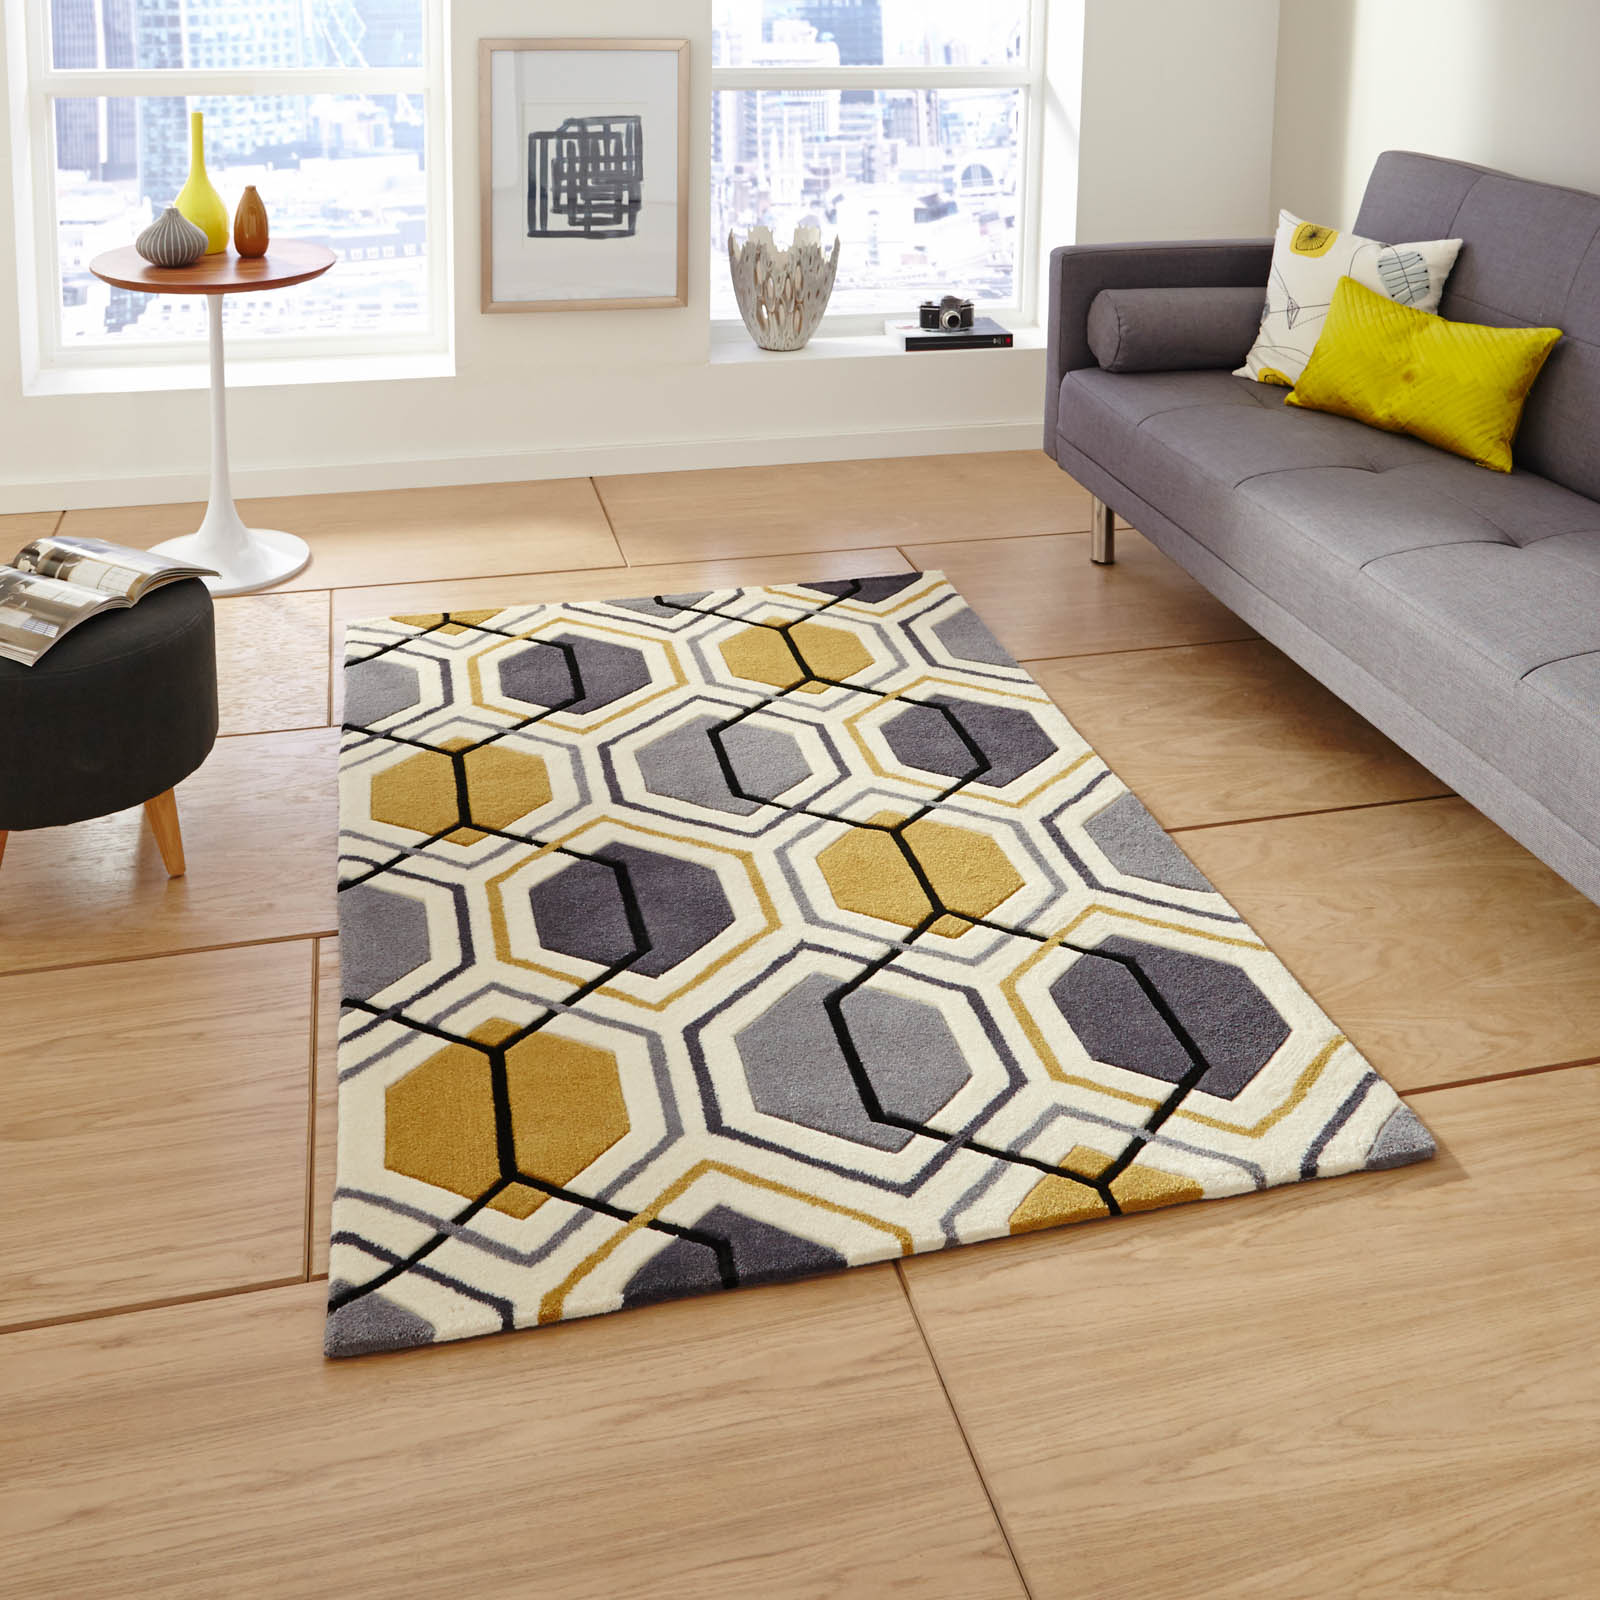 Hong Kong HK 7526 Rugs in Grey Yellow